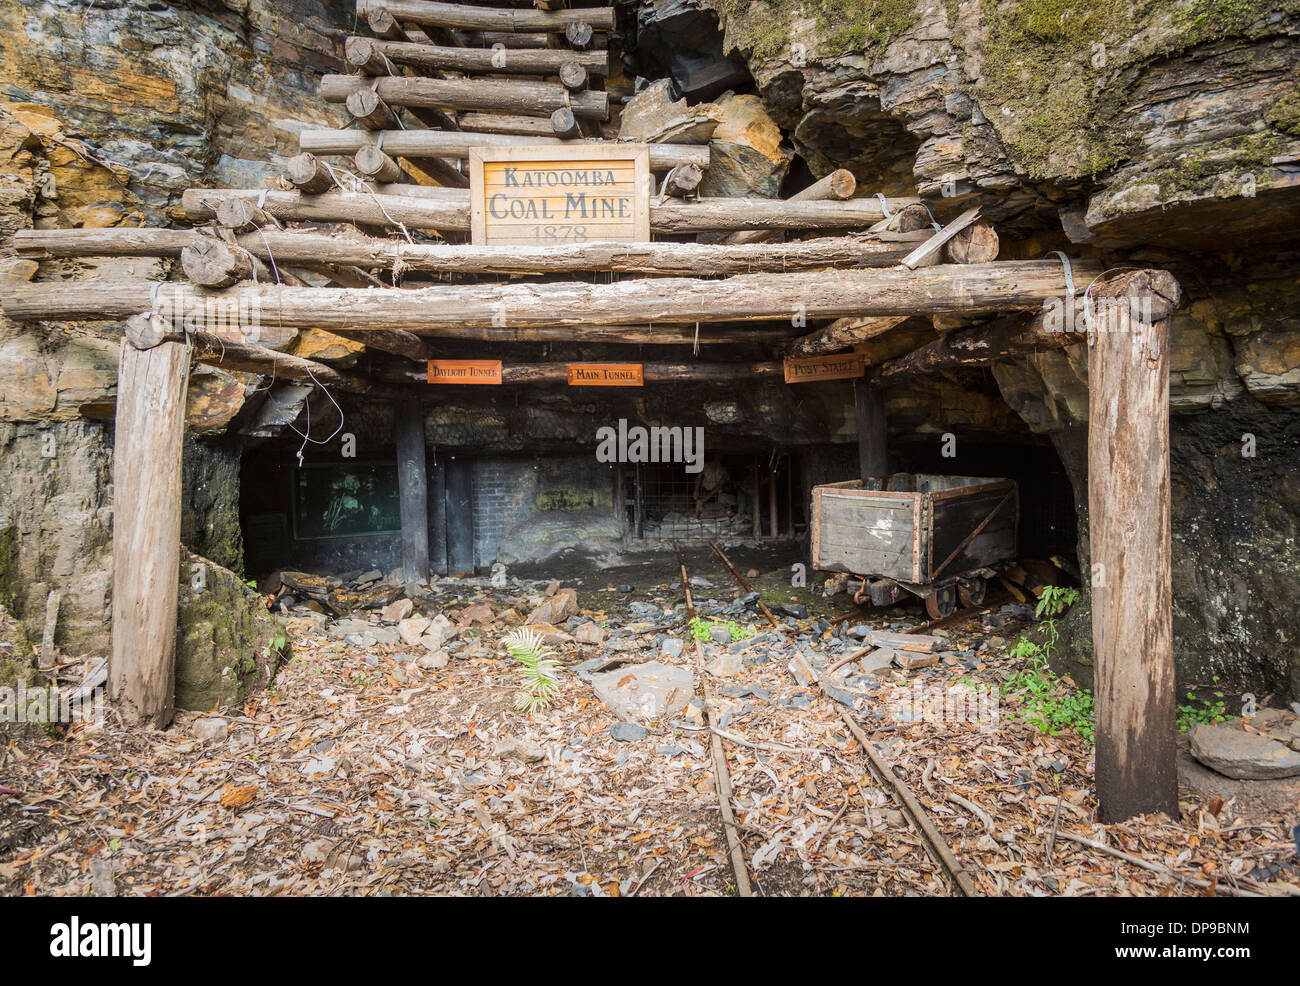 Katoomba Coal Mine entrance in the Blue Mountains, New South Wales, Australia Stock Photo